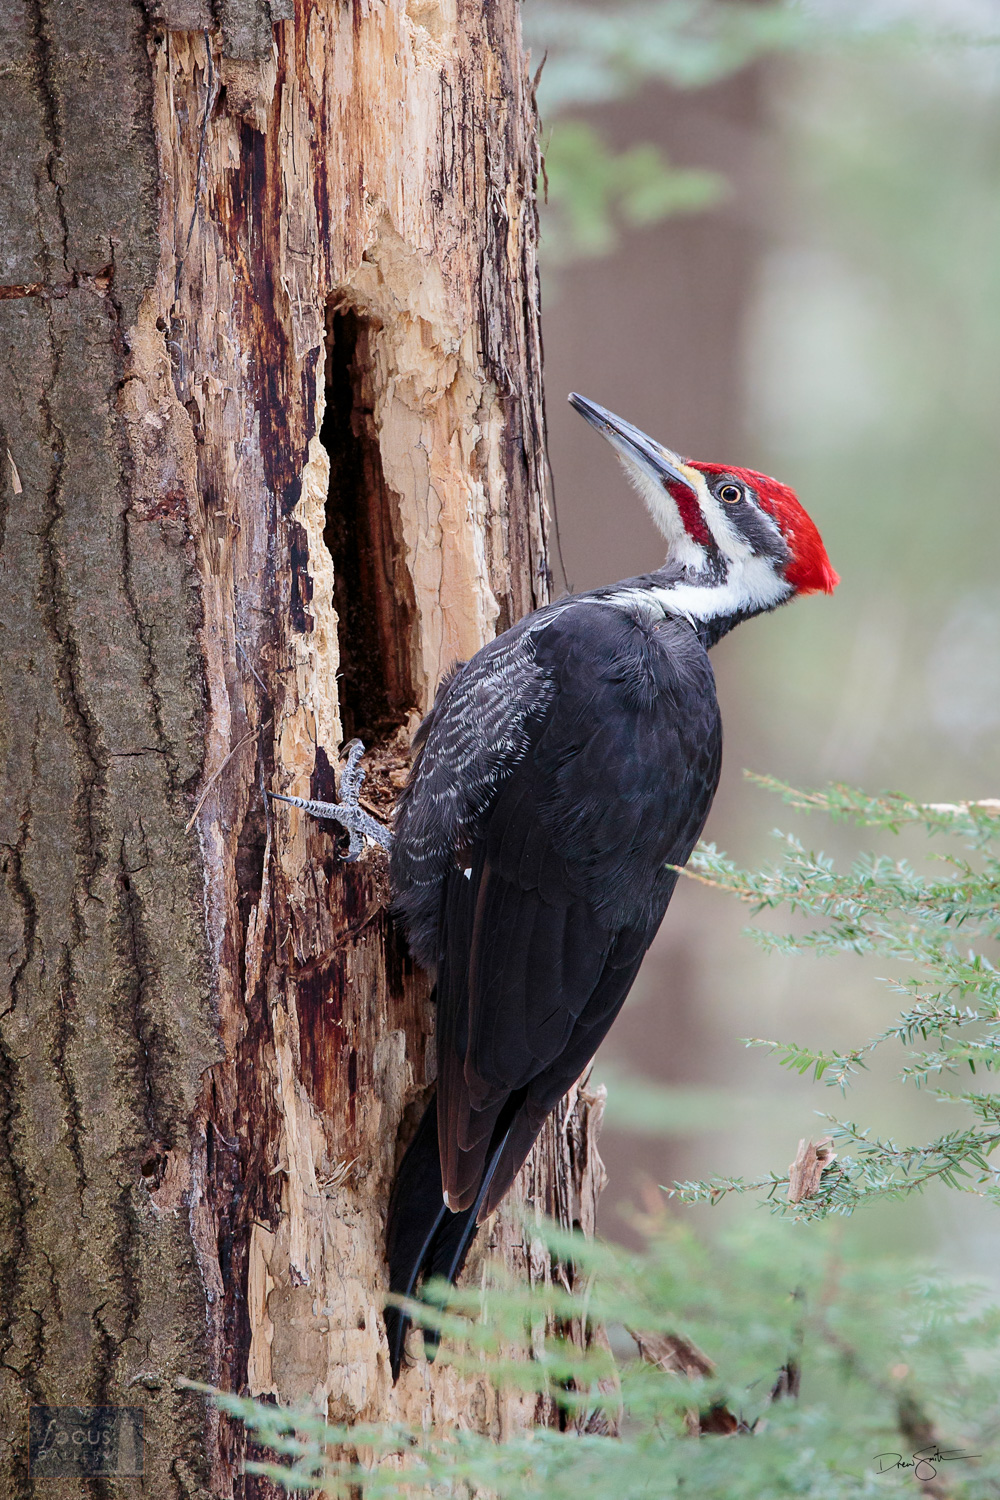 Pileated woodpecker excavating a cavity.